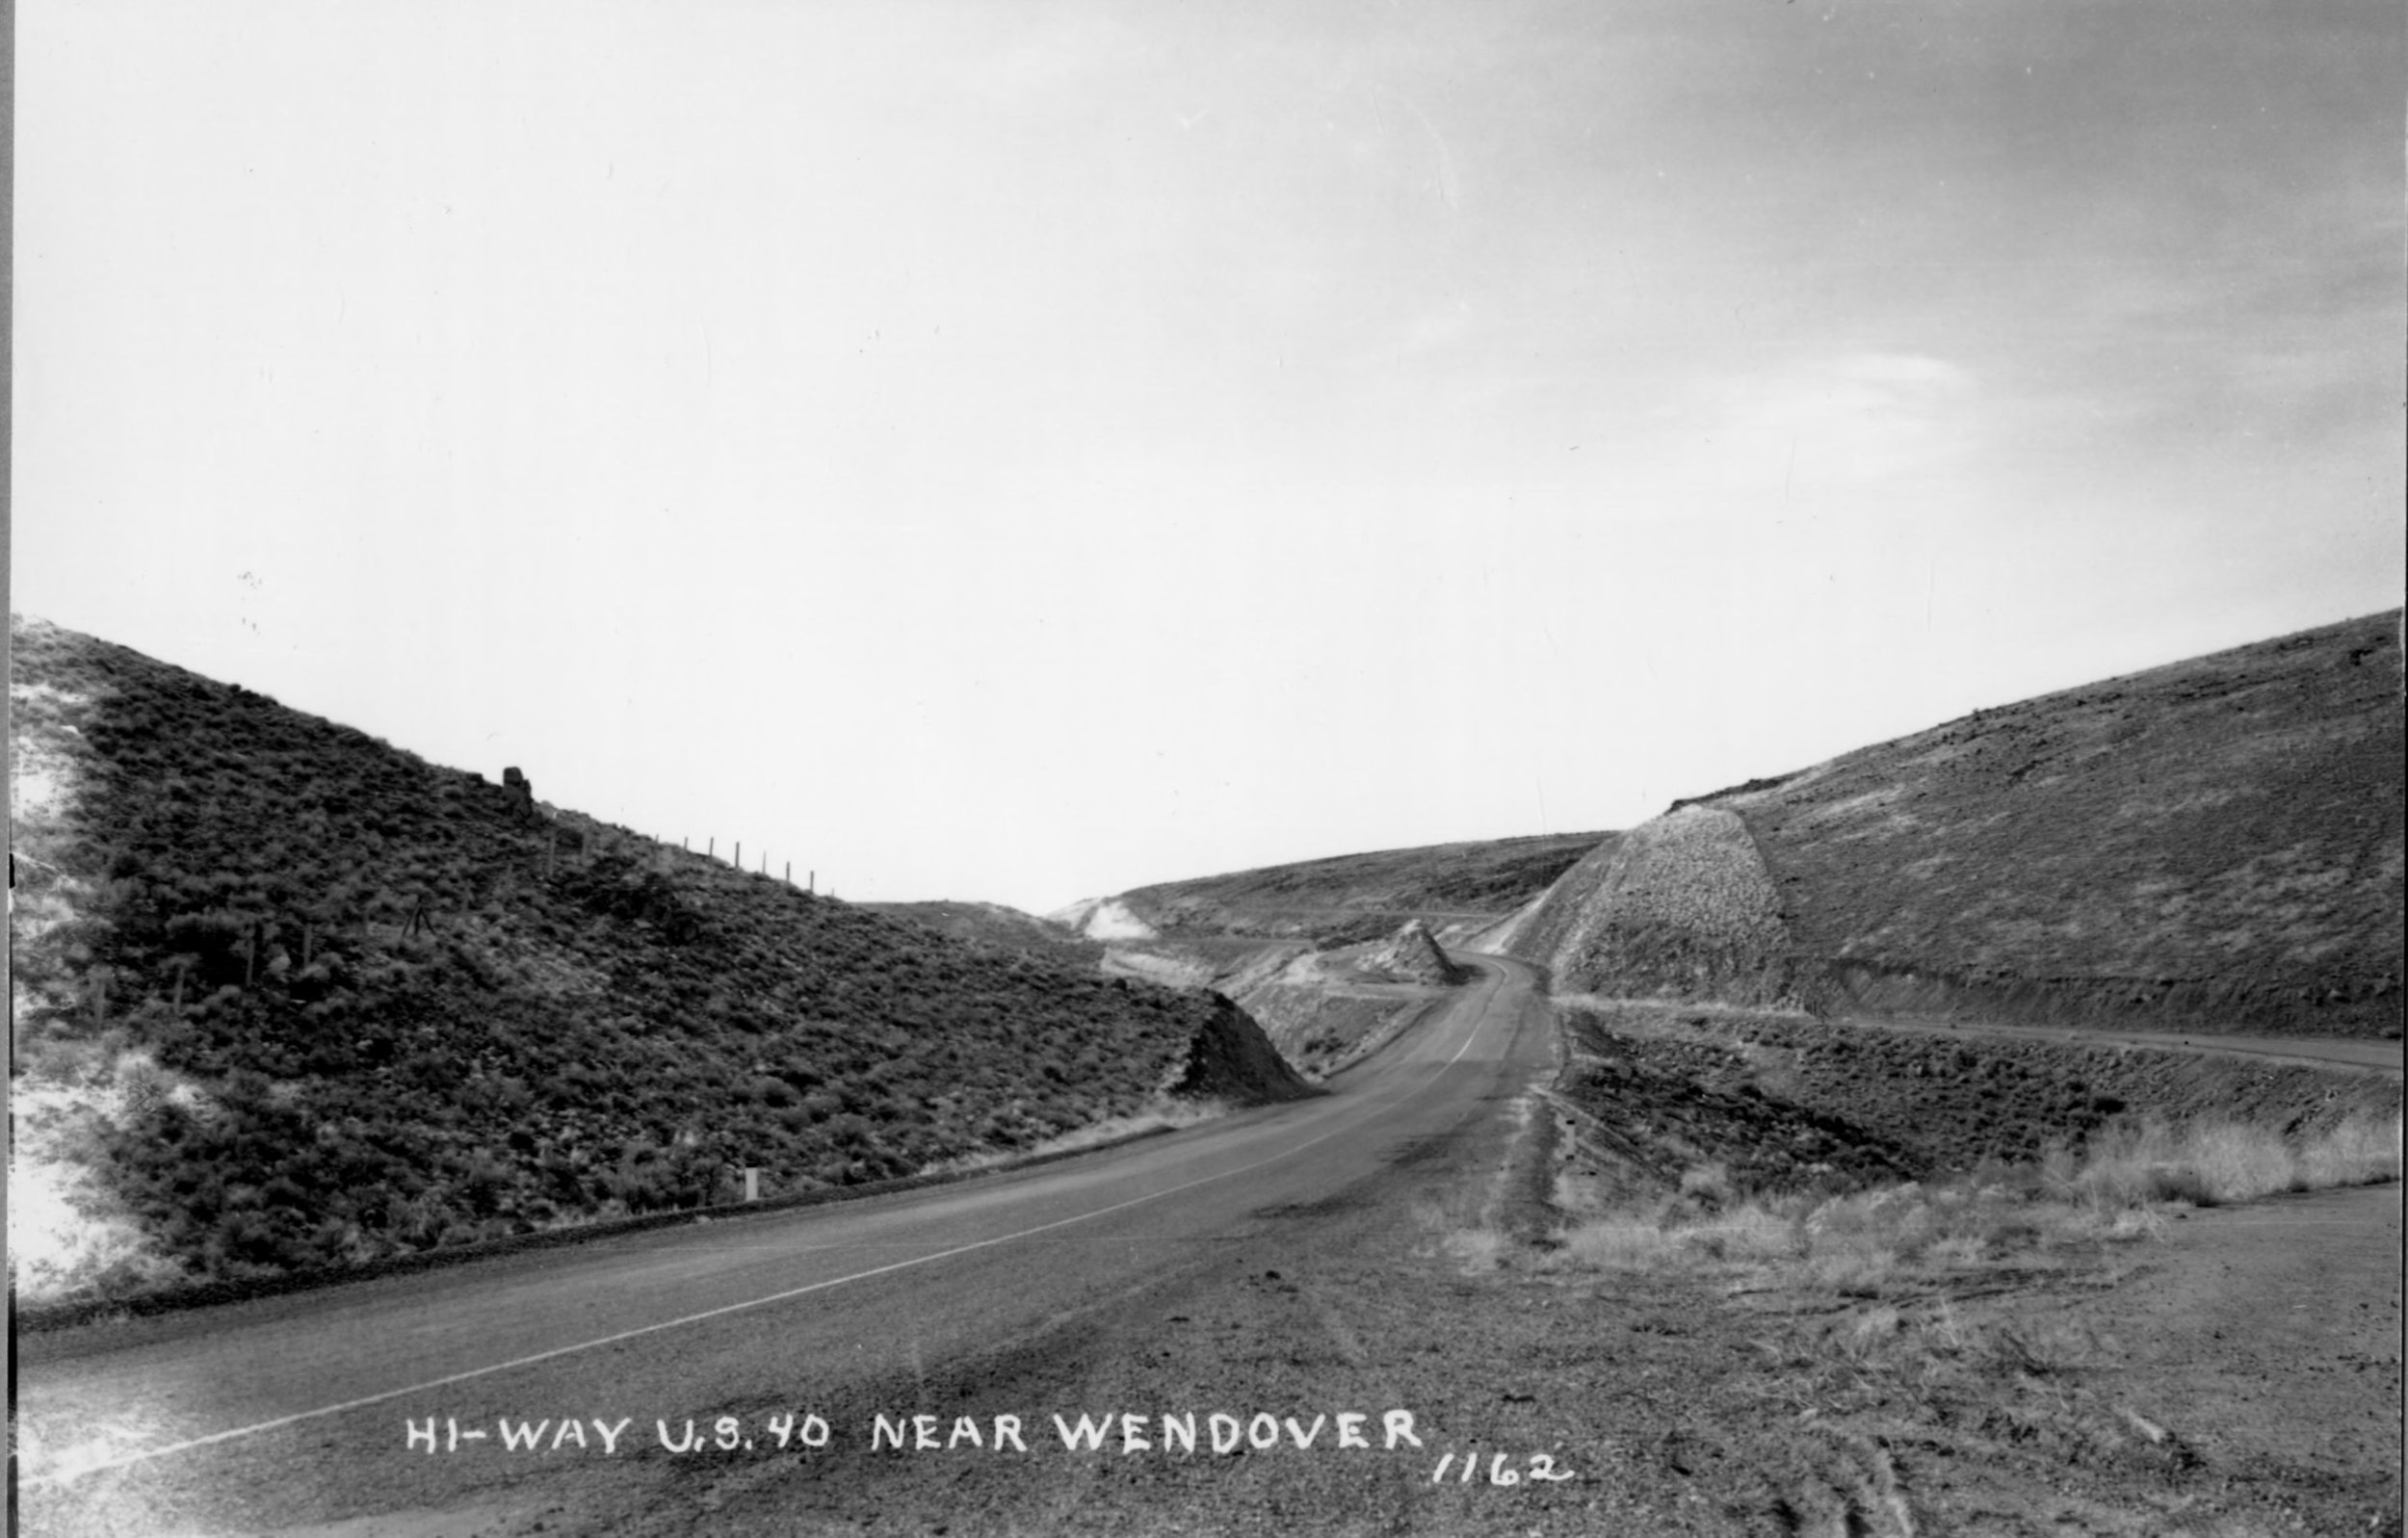 Image courtesy of Special Collections Department, University of Nevada, Reno, Libraries.